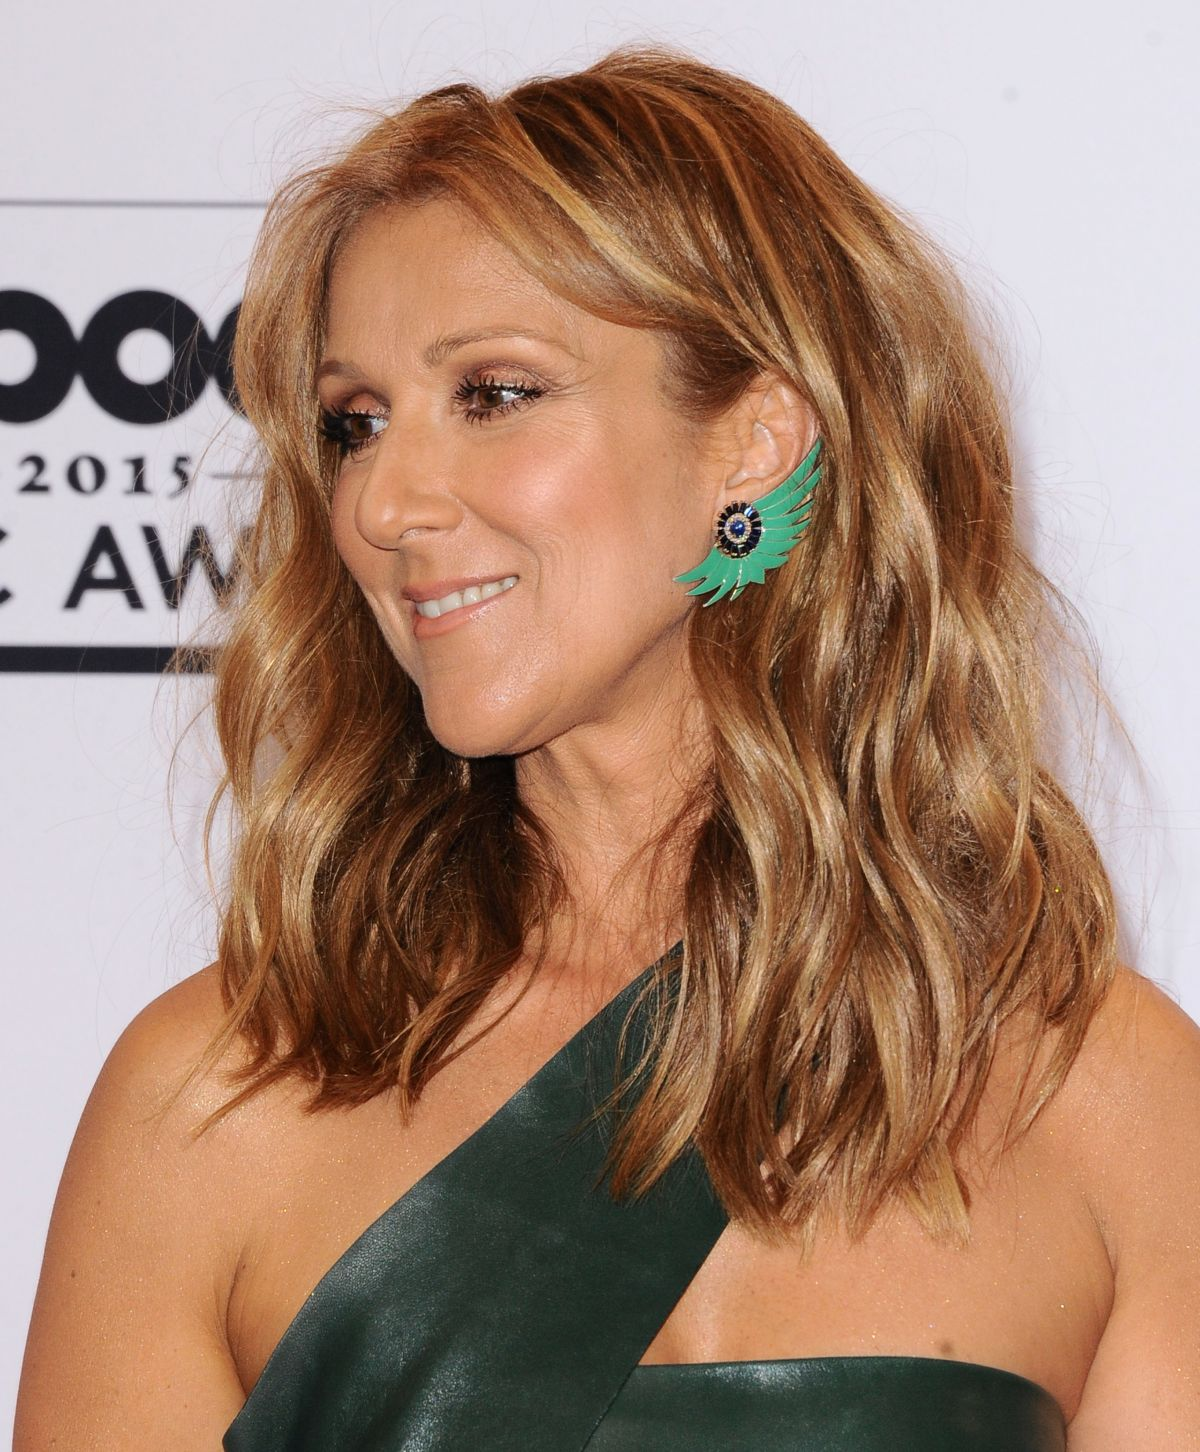 Celine Dion Dropped $2 Million Humidifier for Her Skin